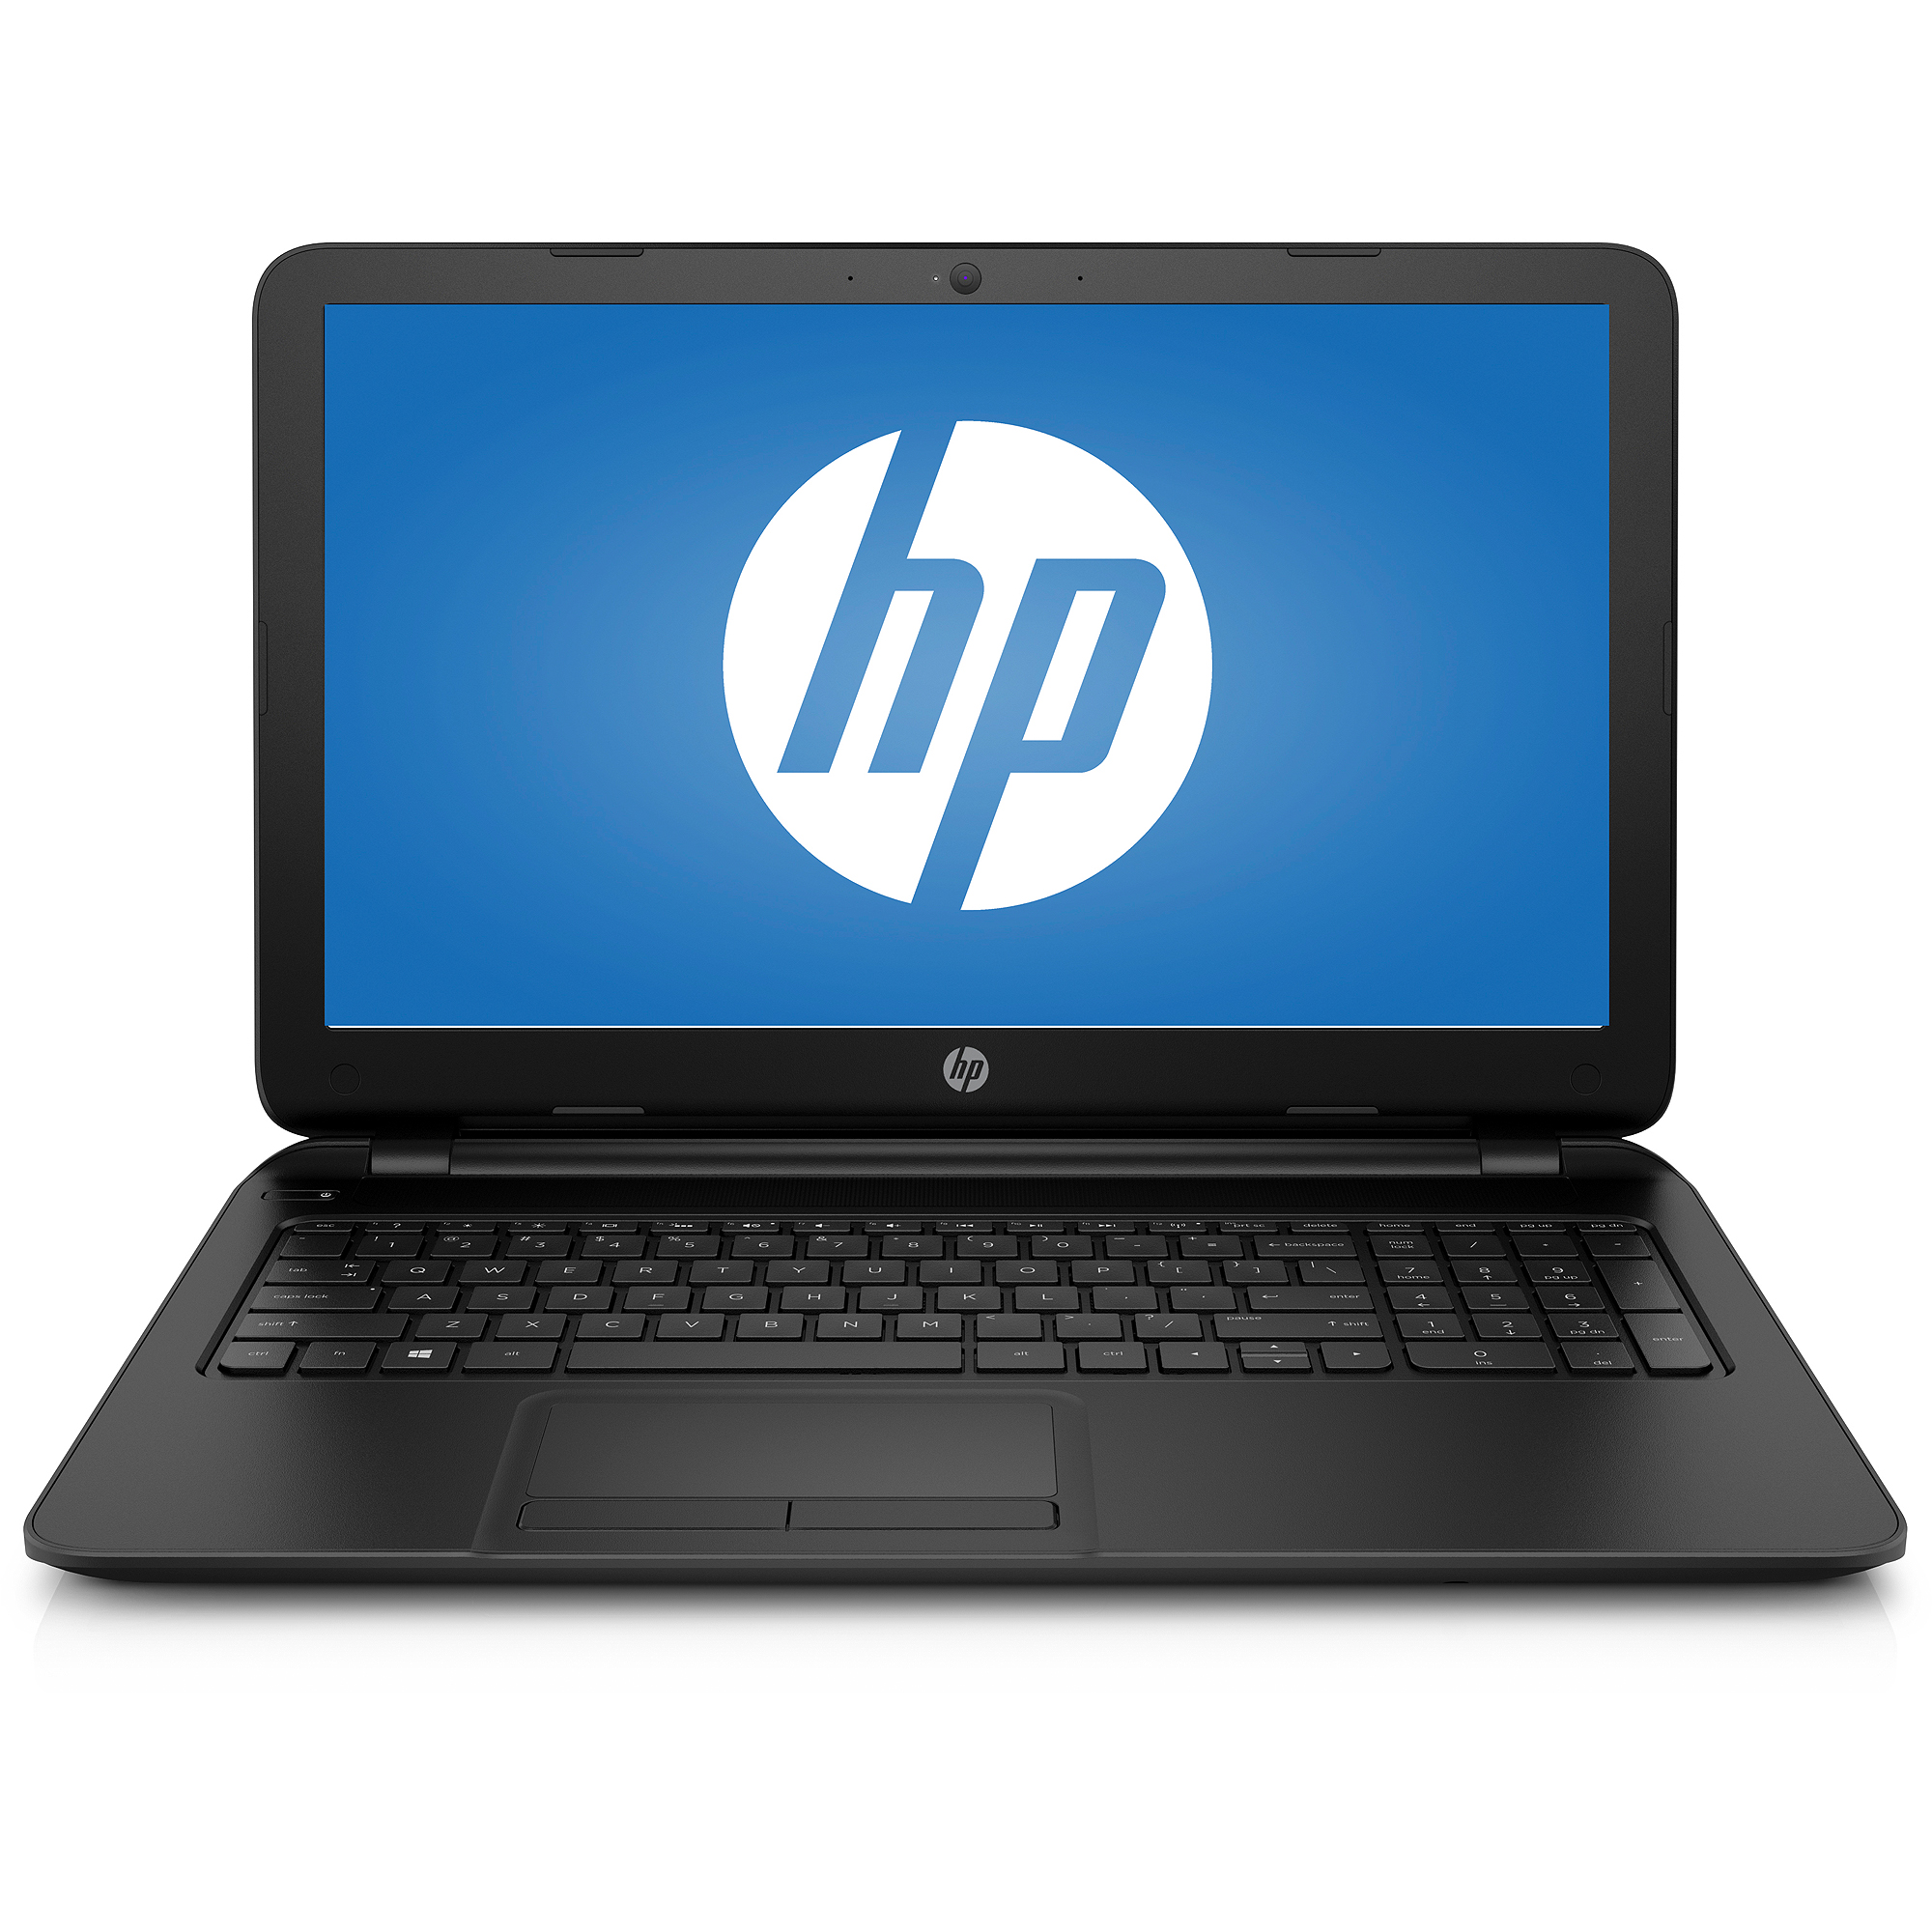 ip HP Black  fwm Laptop PC with AMD E Accelerated Dual Core Processor GB Memory Hard Drive and Windows DVD CD DRIVE NOT IN